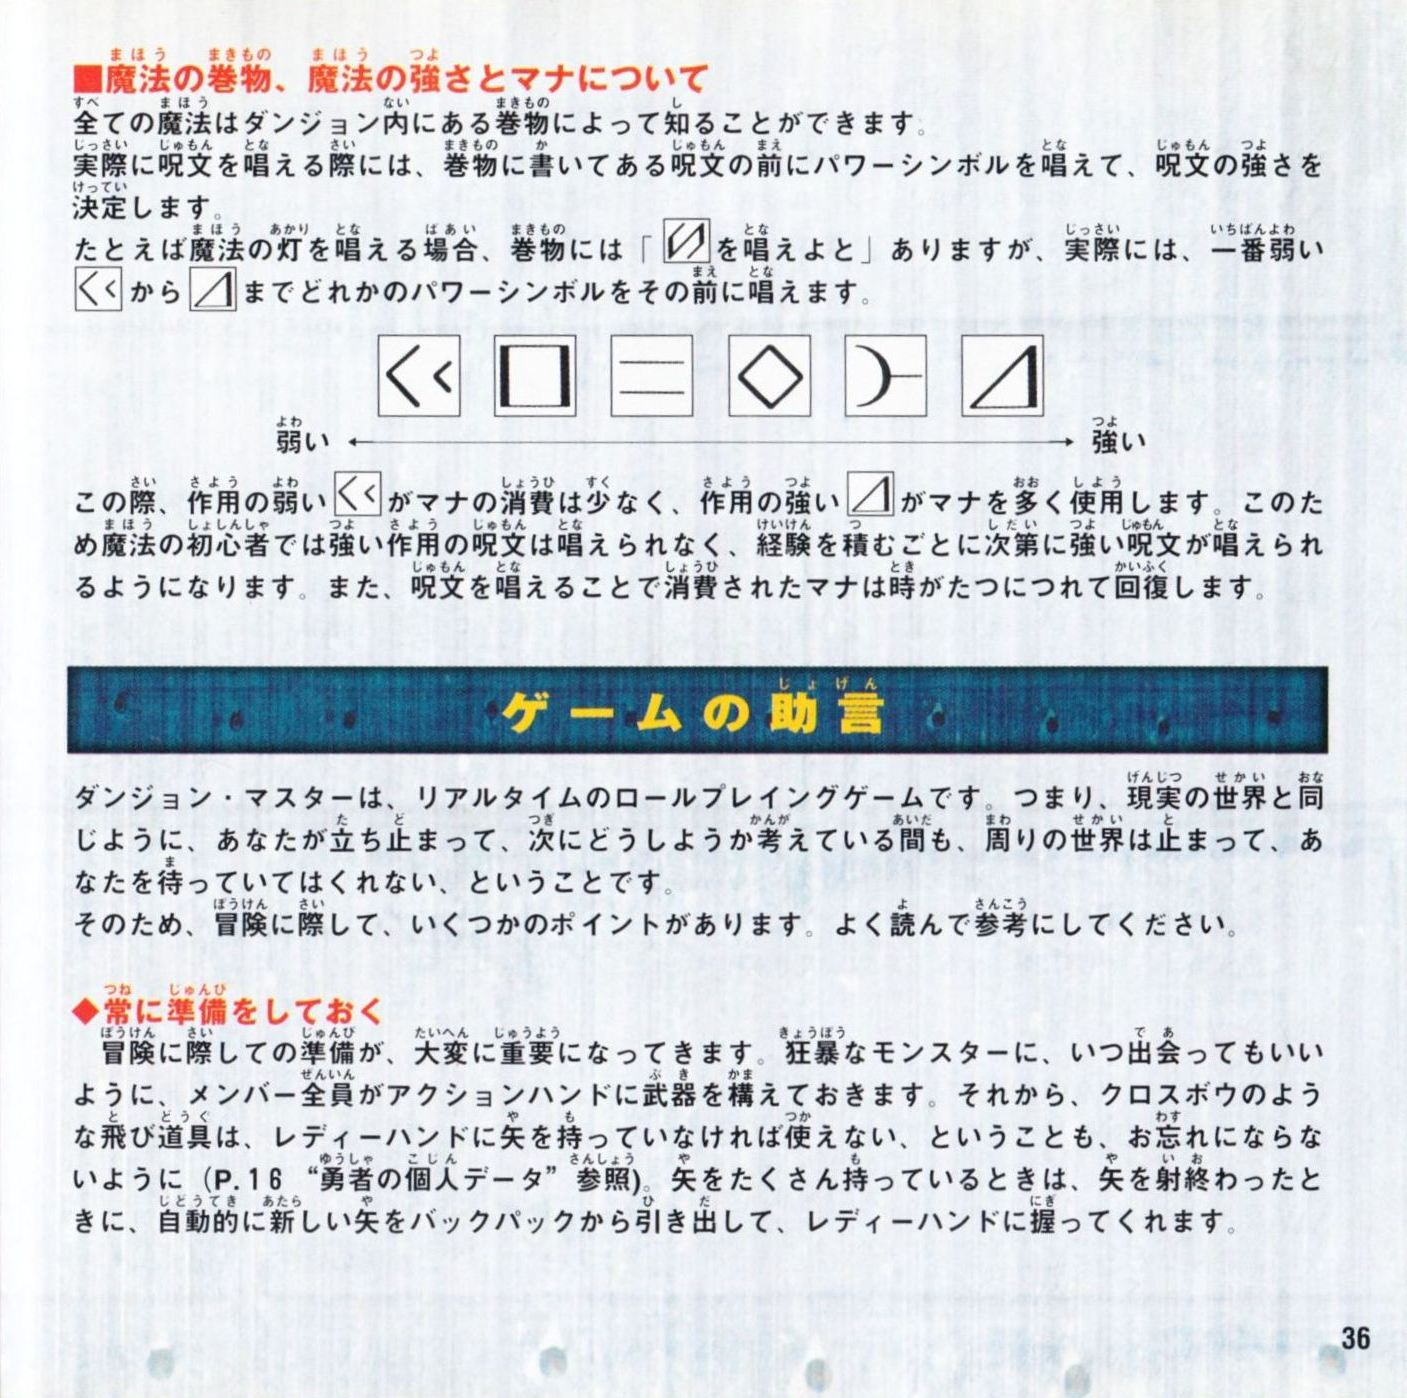 Game - Dungeon Master Nexus - JP - Sega Saturn - Booklet - Page 037 - Scan